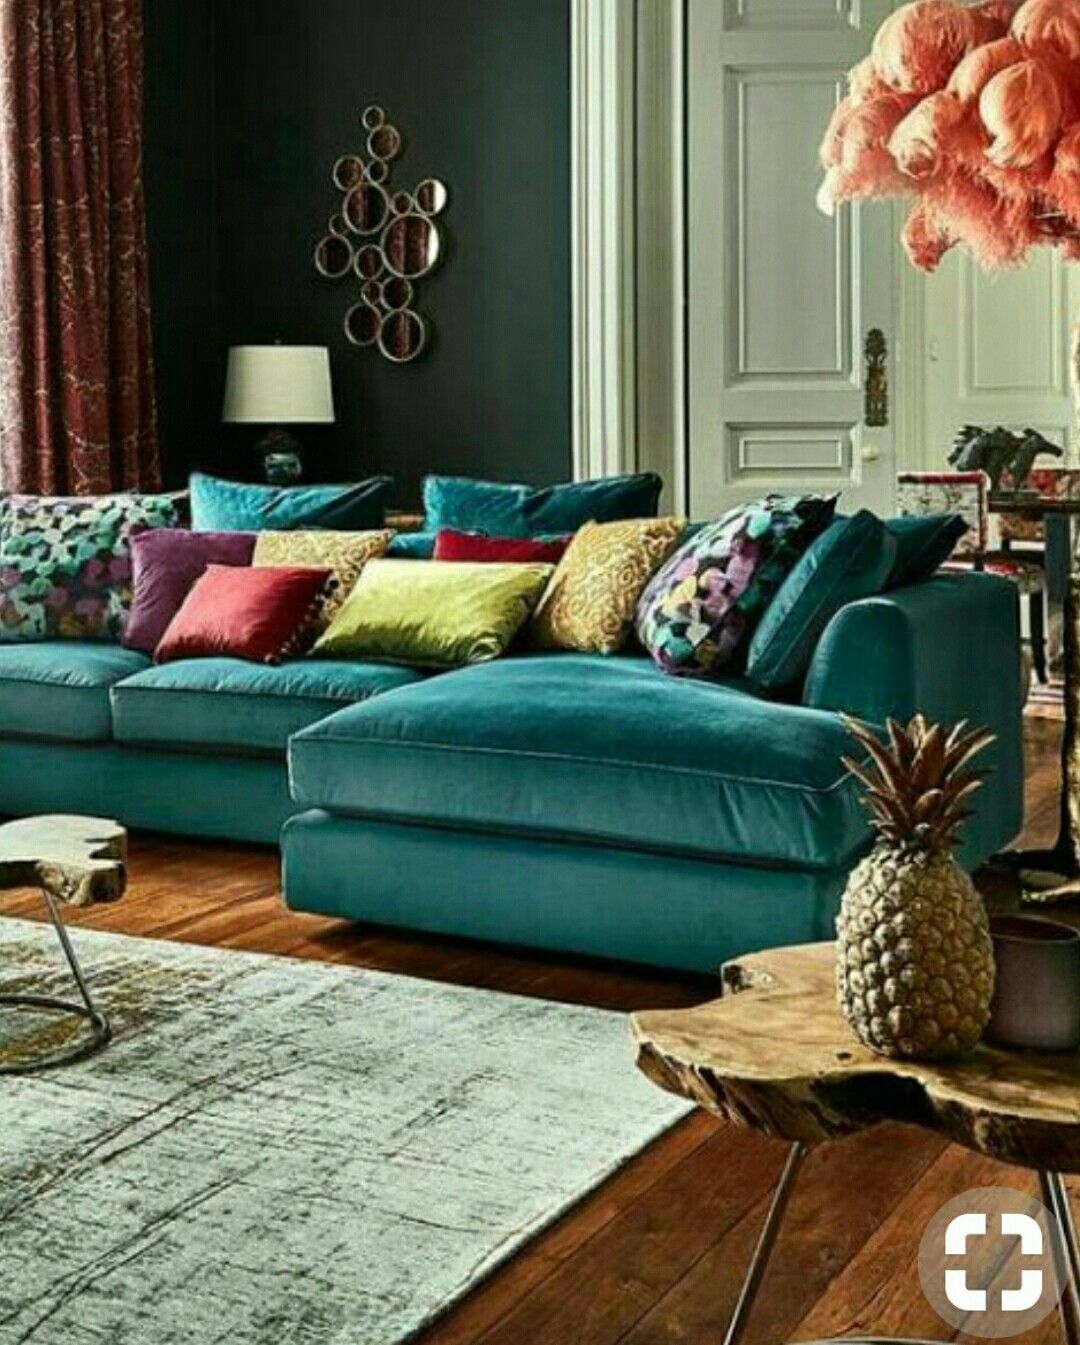 Love the teal velvet sectional couch this has a upscale boho feel great use of colors harrington large chaise sofa